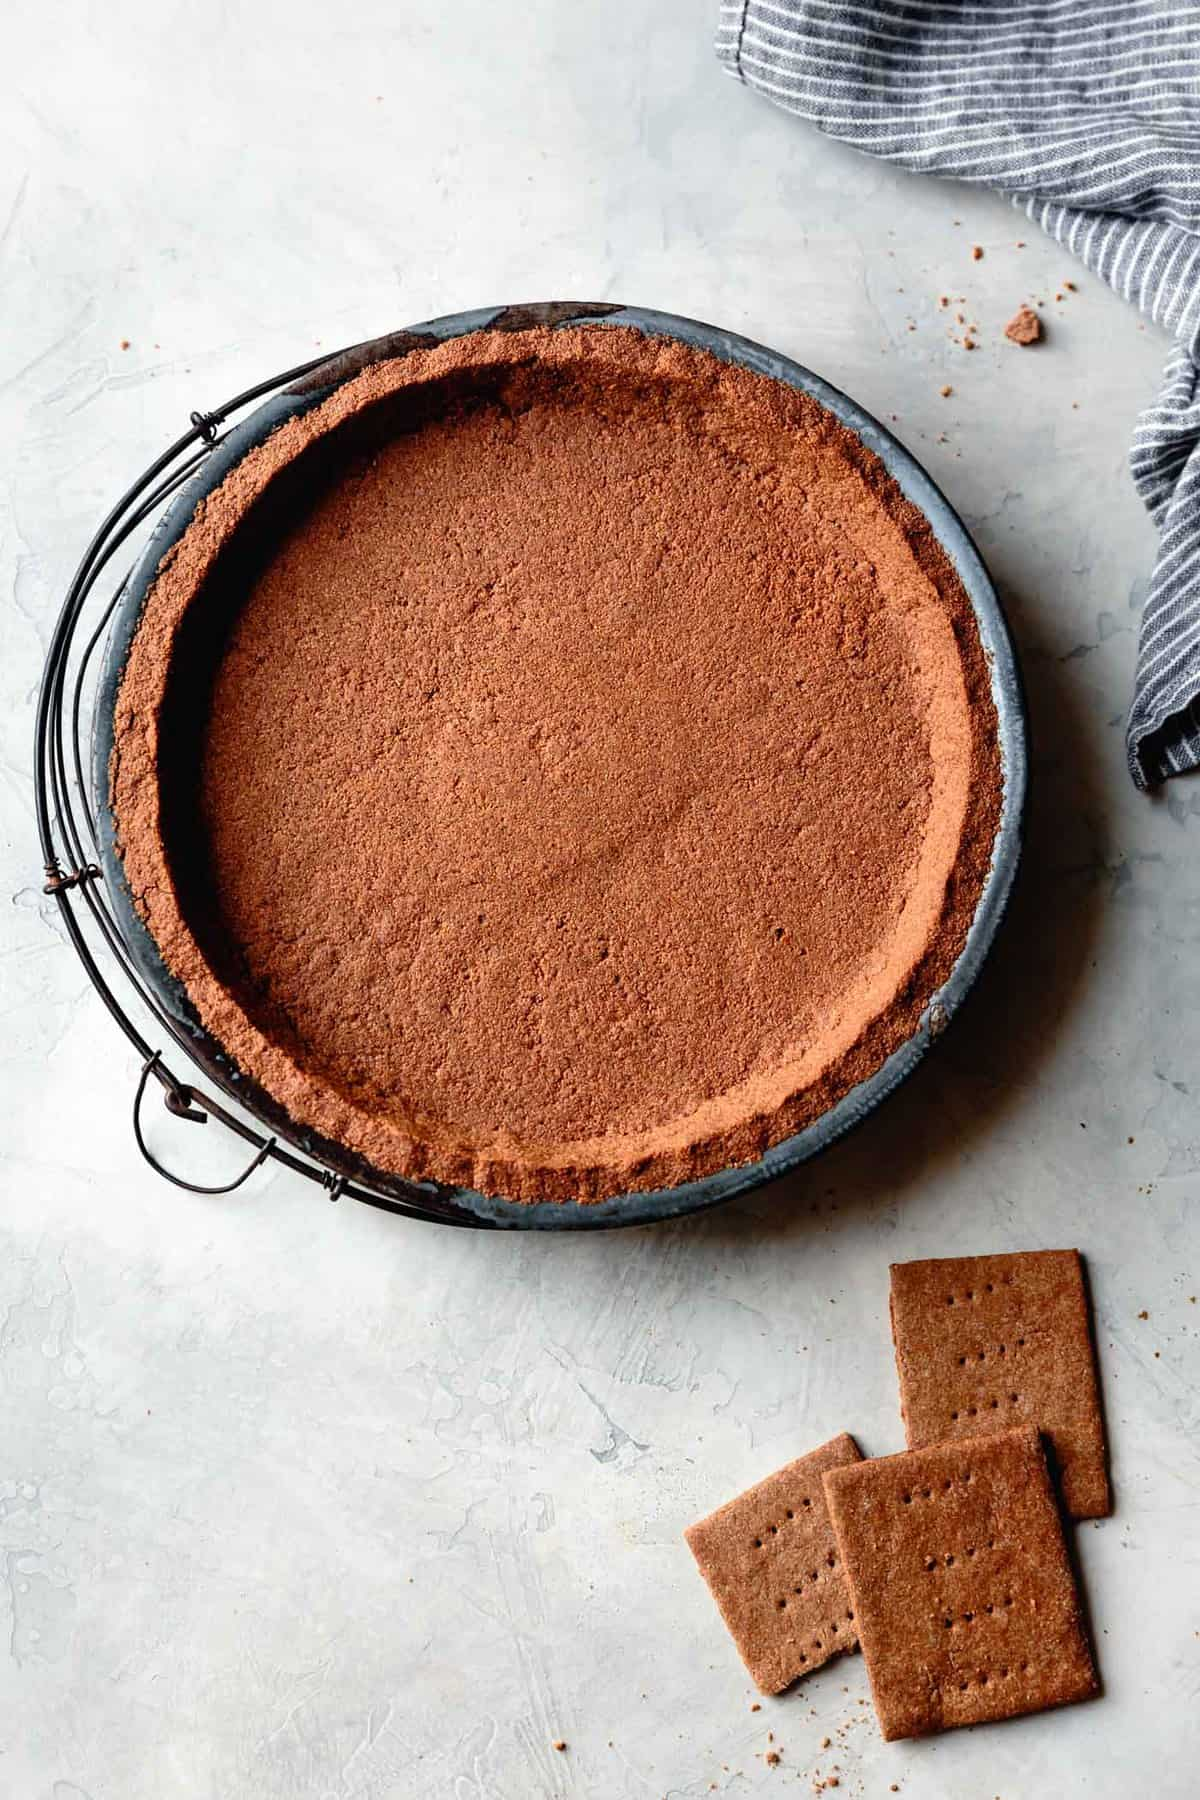 gluten-free graham cracker crust, baked and cooling on a plaster surface